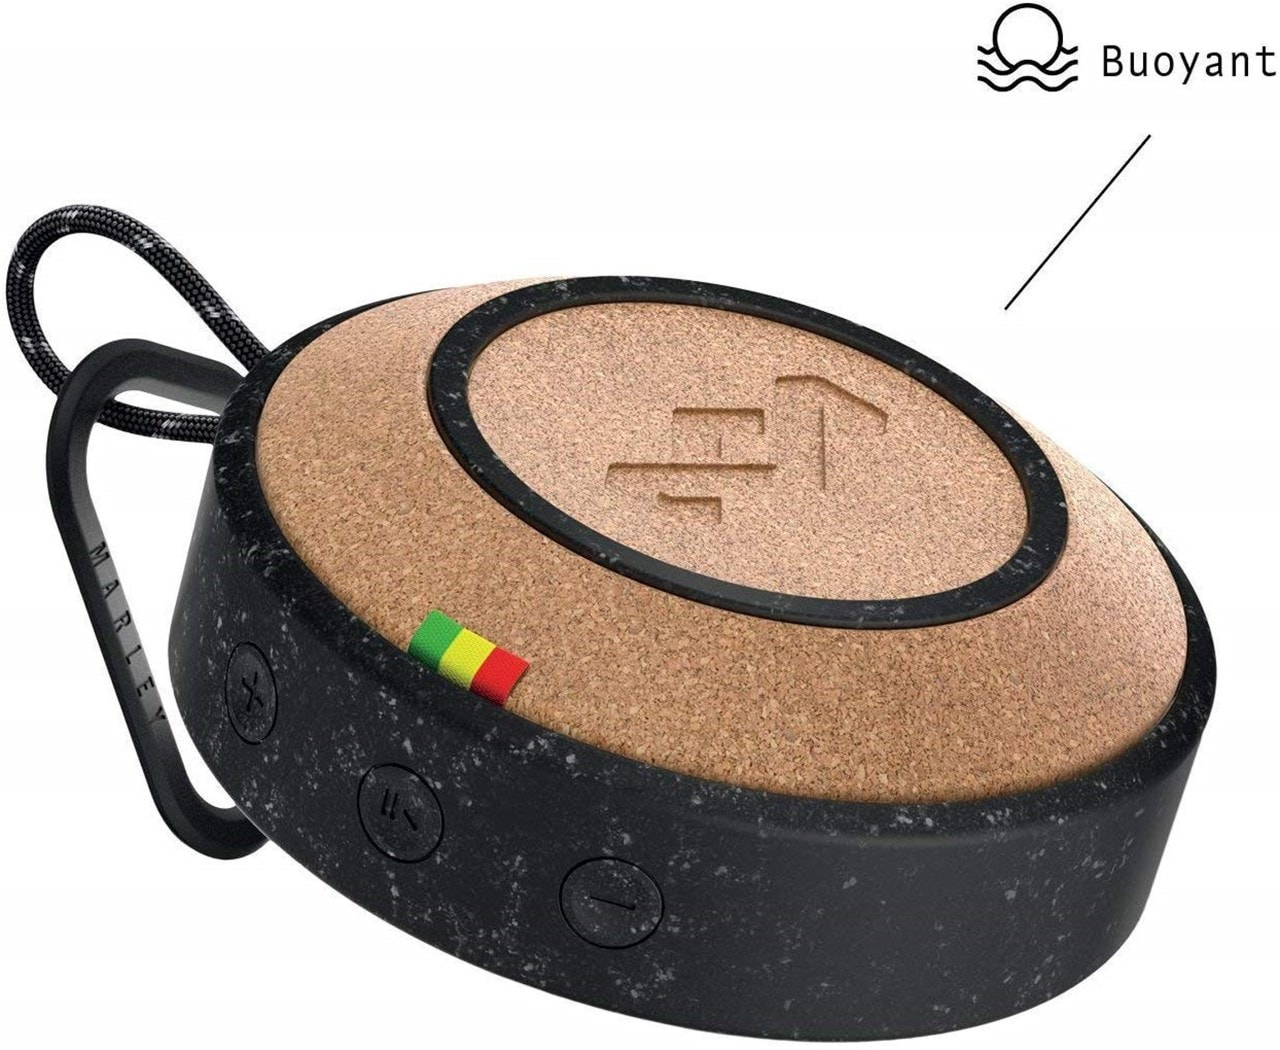 House Of Marley No Bounds Signature Black Bluetooth Speaker - 5